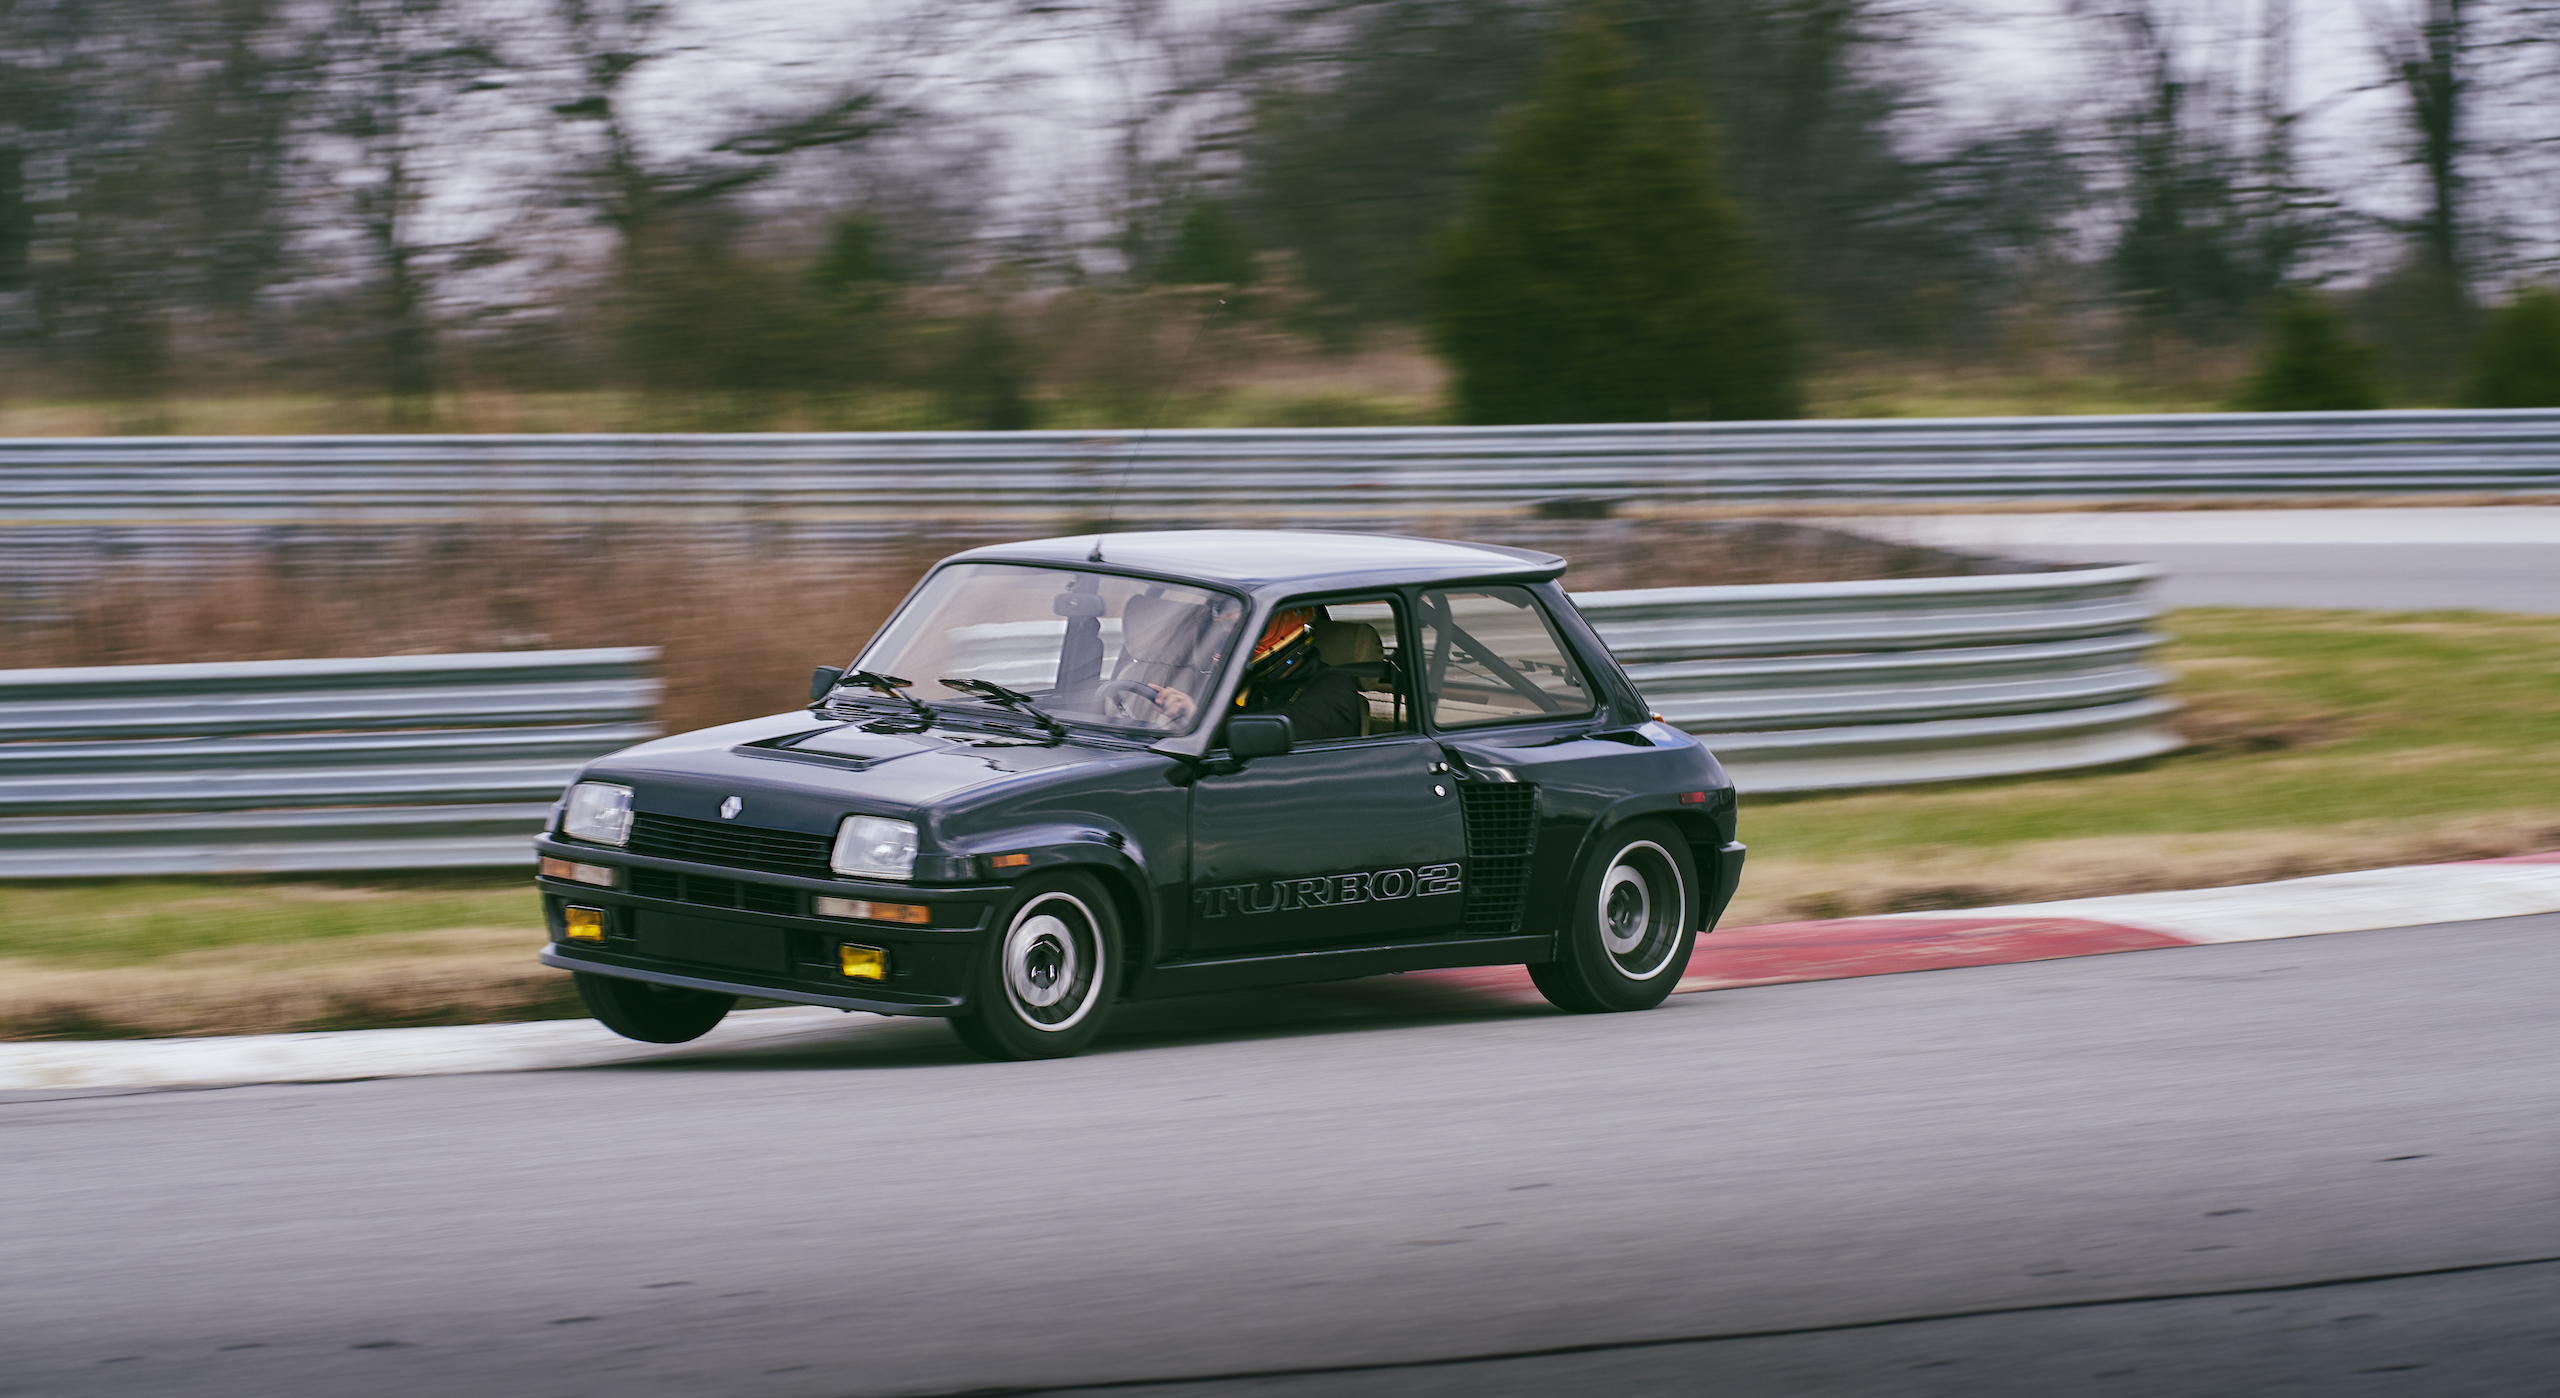 1985 Renault R5 Turbo 2 front three-quarter track action